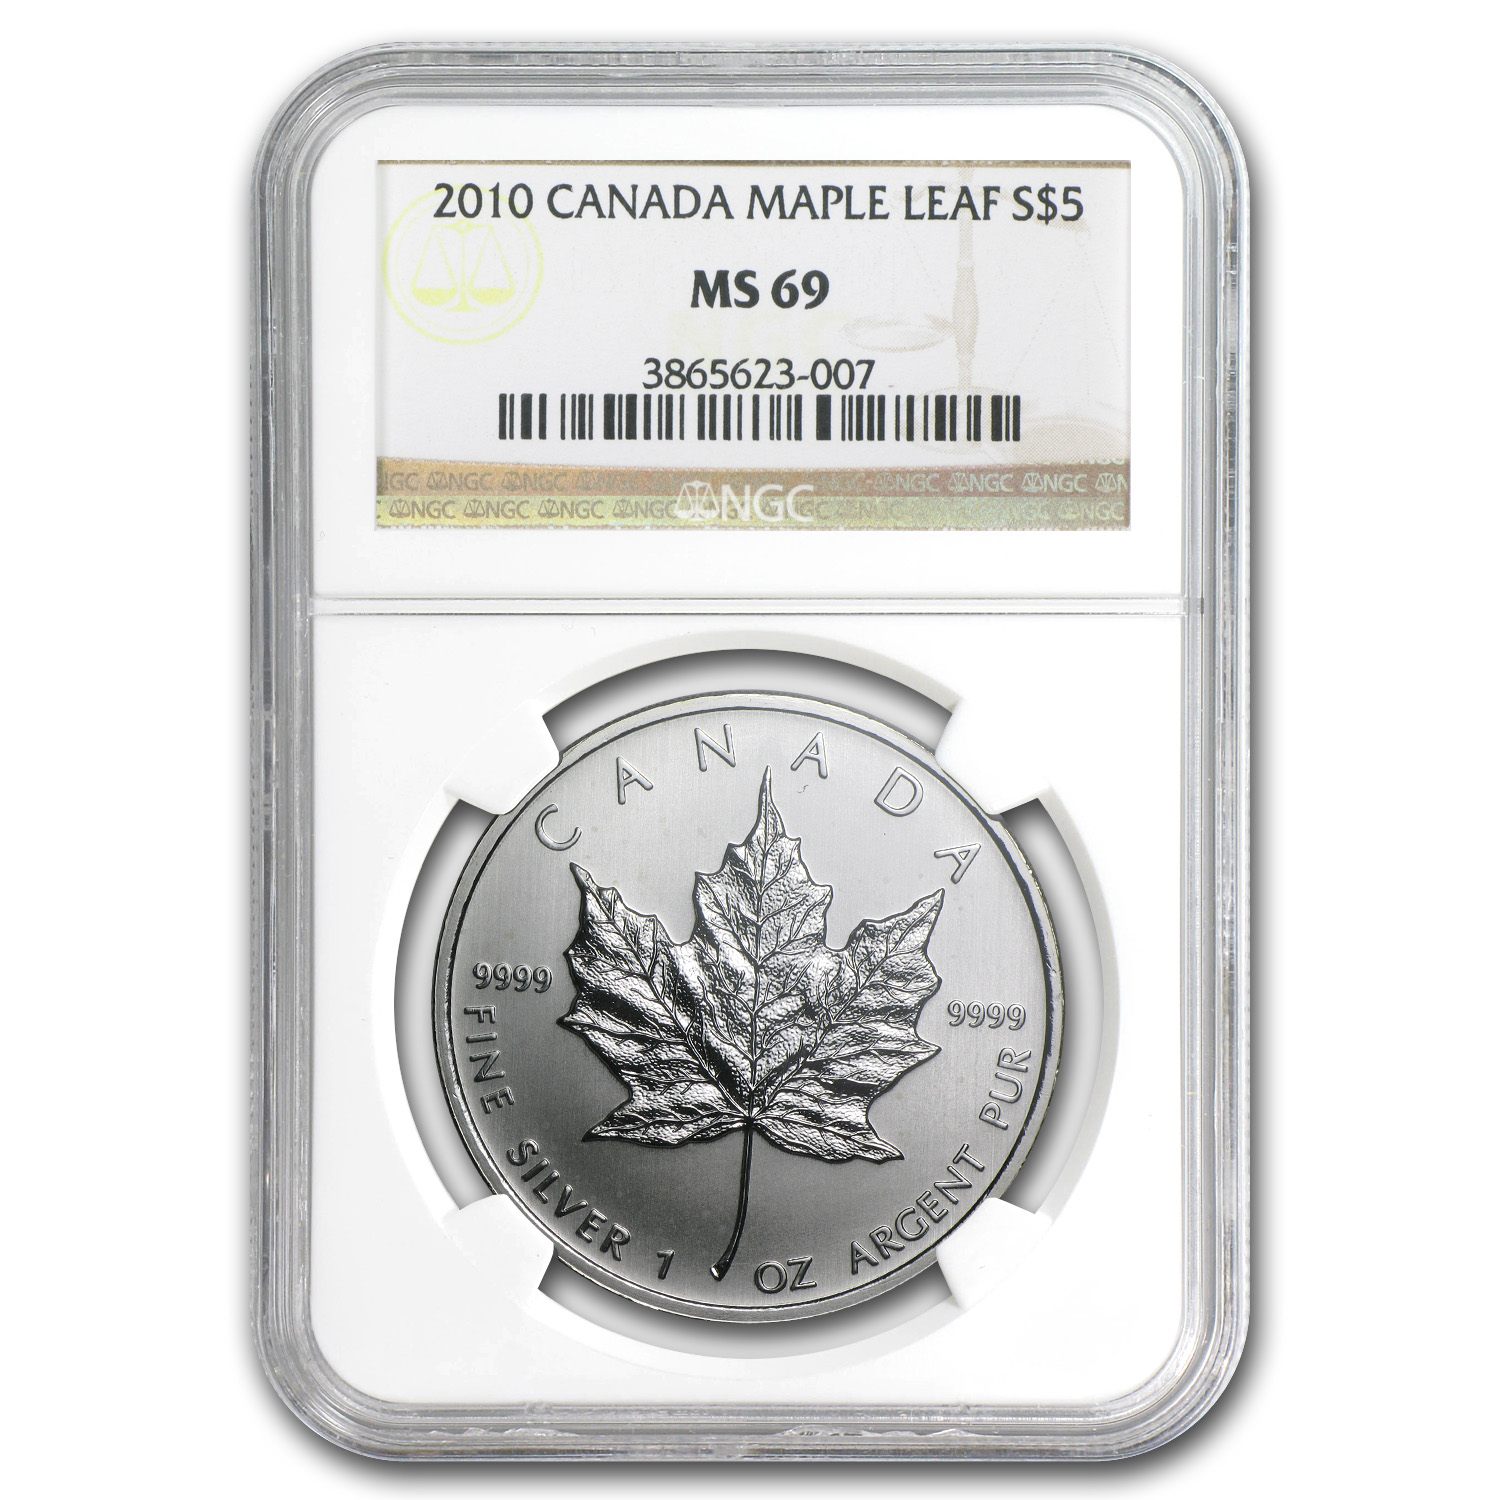 2010 Canada 1 oz Silver Maple Leaf MS-69 NGC